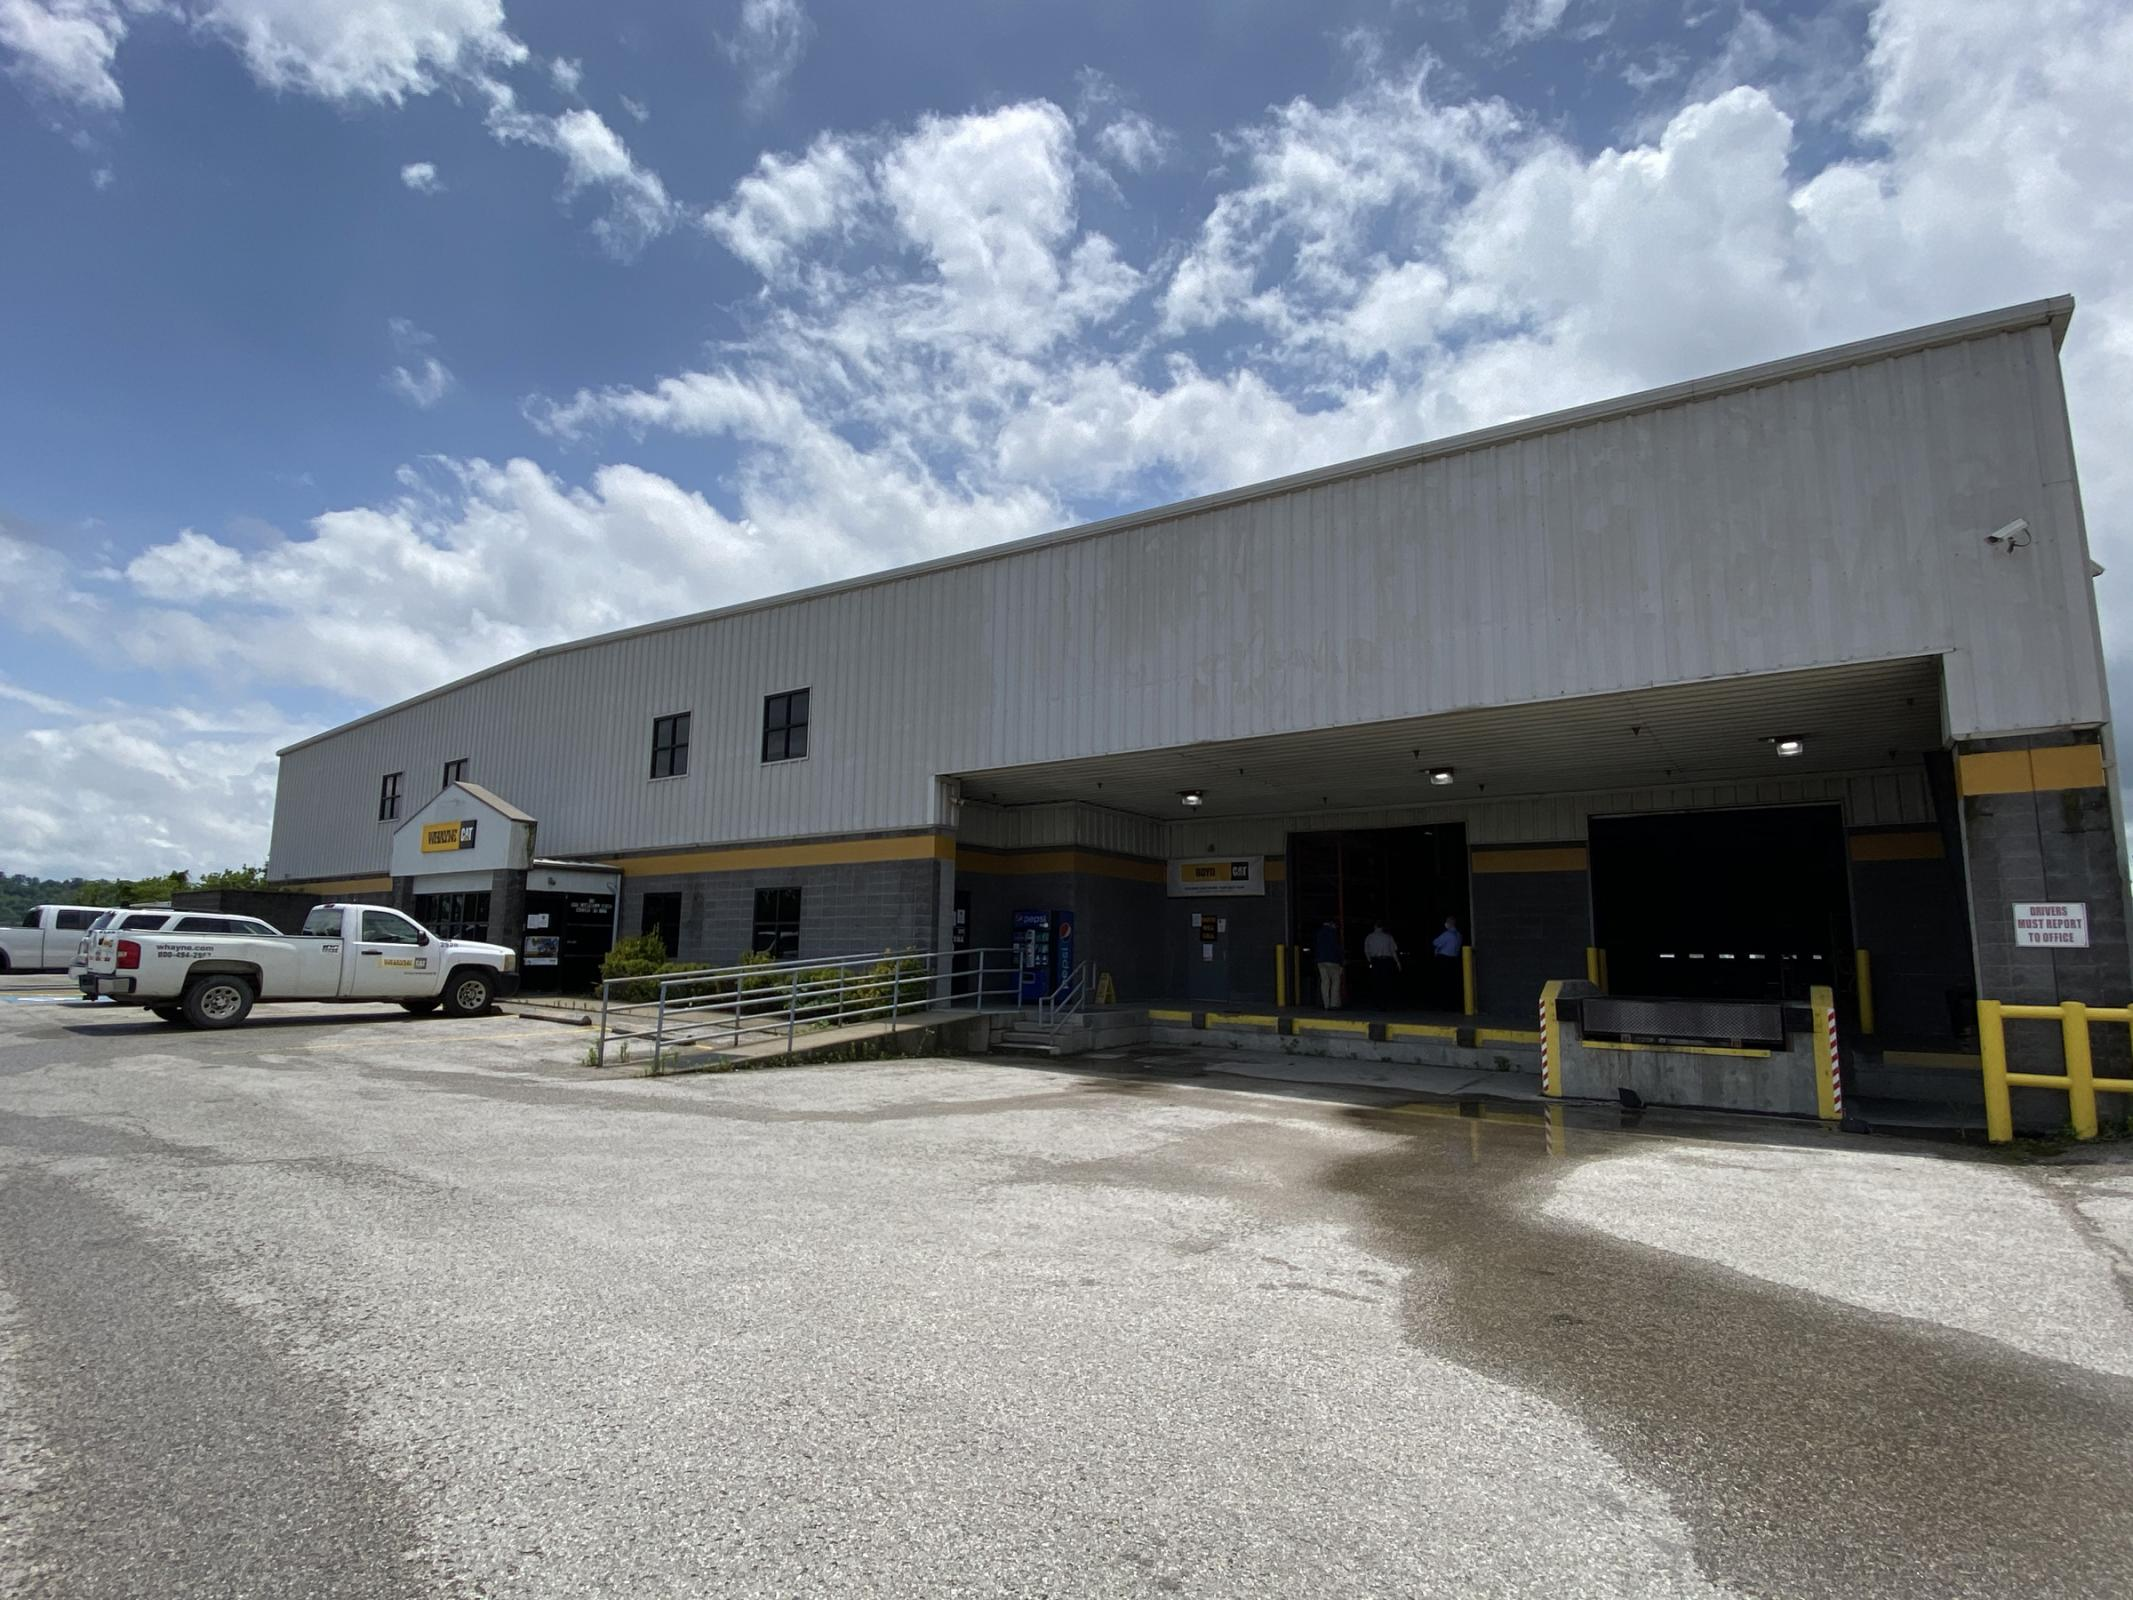 Main Photo For 35,000 Square-Foot Industrial Building